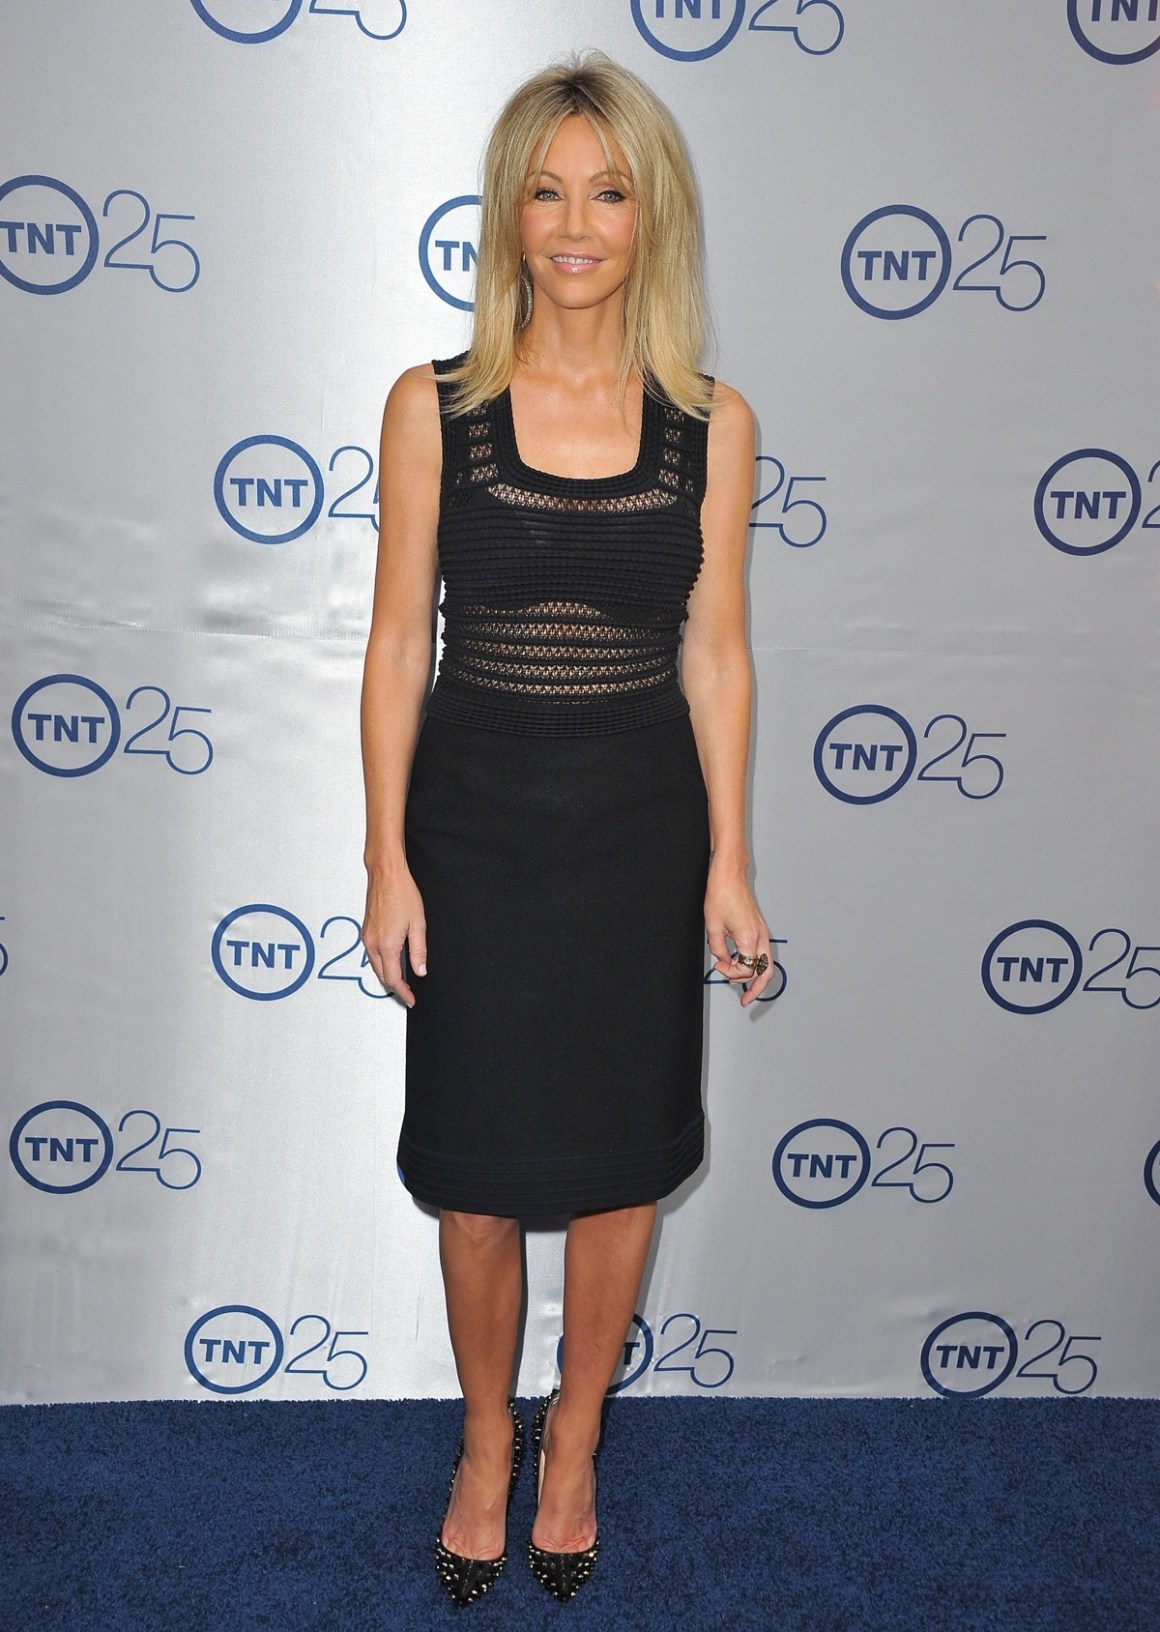 TNT's 25th Anniversary Party - Arrivals